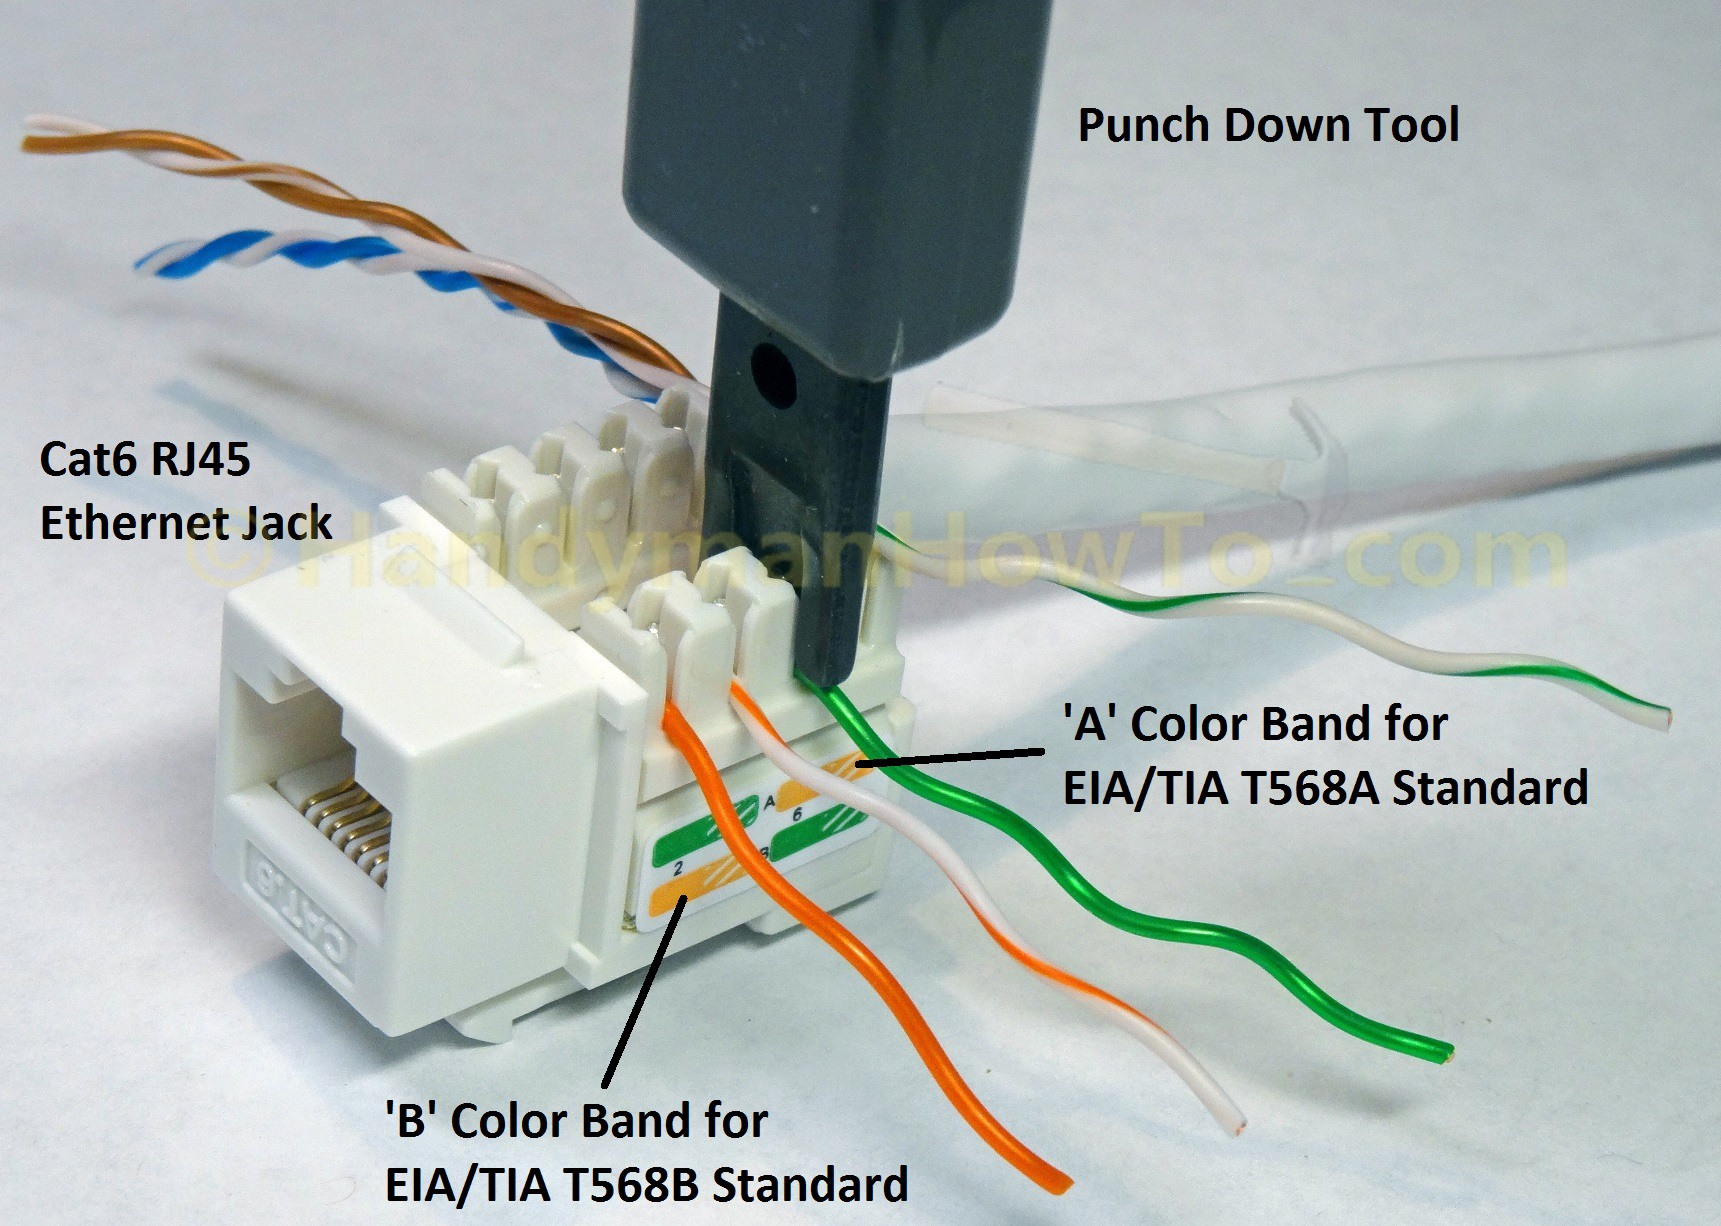 Cat6 Keystone Jack Wiring Diagram - How to Wire A Cat6 Rj45 Ethernet Jack Handymanhowto 2 17g